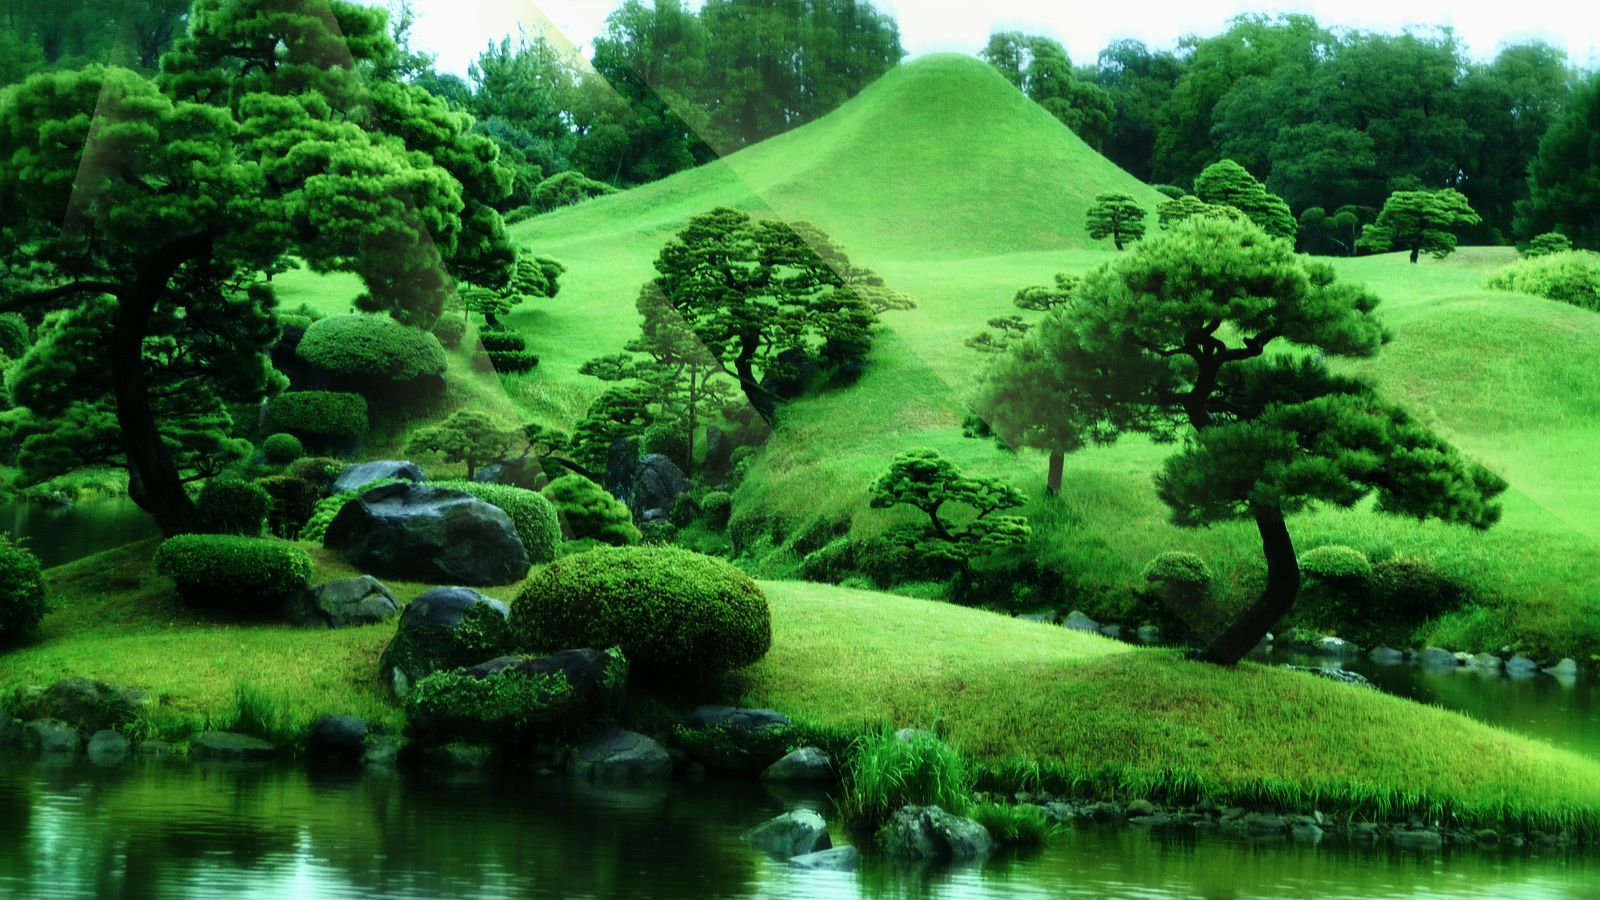 Scenery wallpaper fond d 39 ecran paysage zen for Fond wallpaper